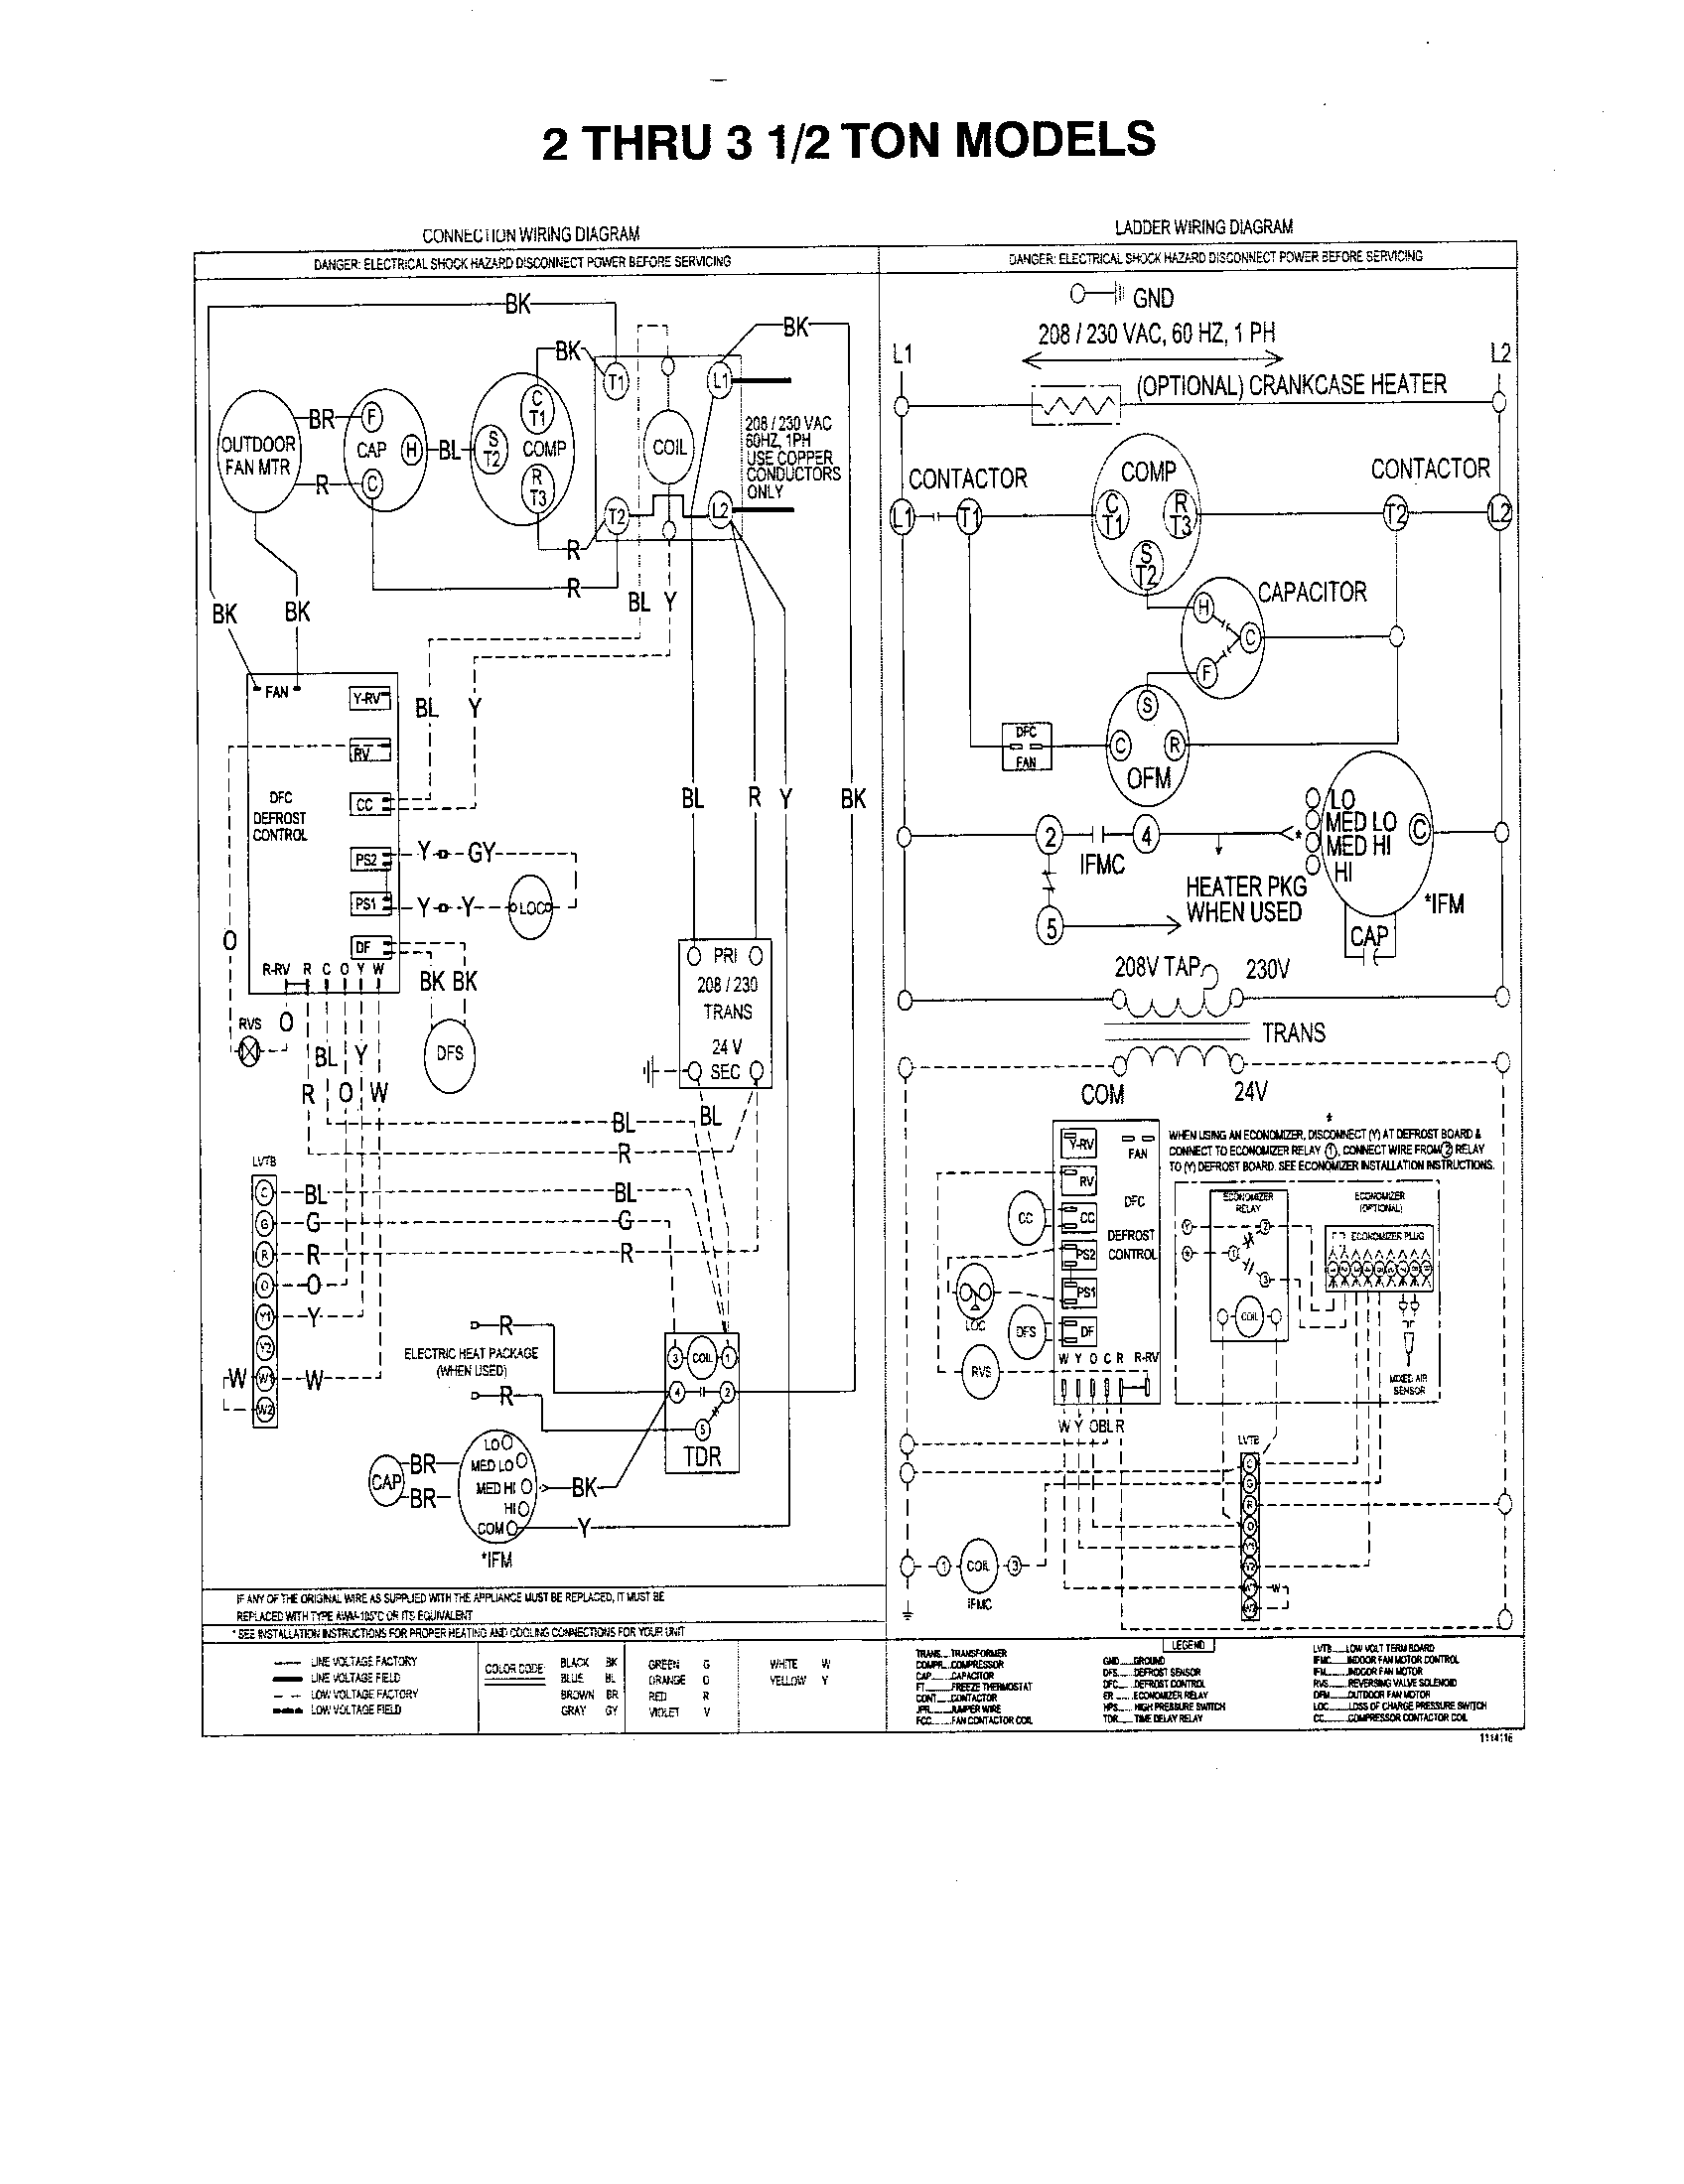 Lennox Heat Pump Wiring Diagram. Lennox. Discover Your